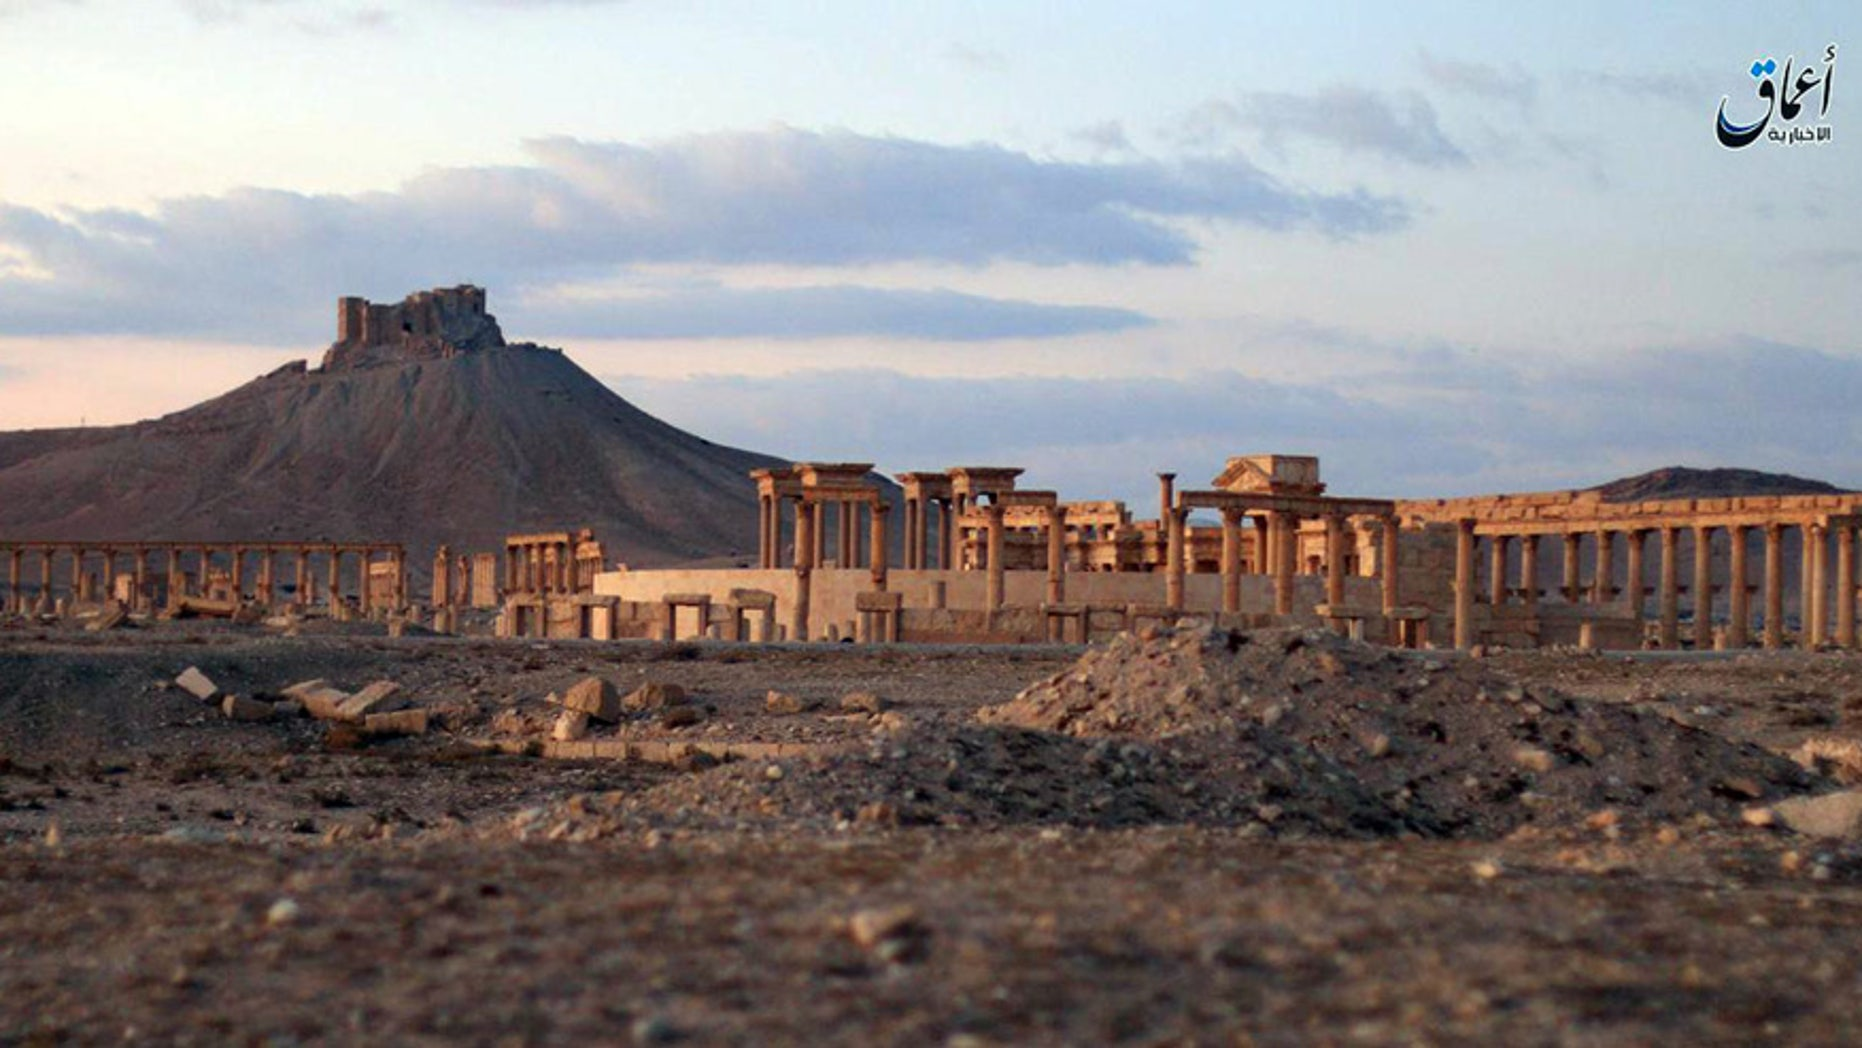 This file image posted online on Sunday, Dec. 11, 2016, by the Aamaq News Agency, a media arm of the Islamic State group, purports to show a general view of the ancient ruins of the city of Palmyra